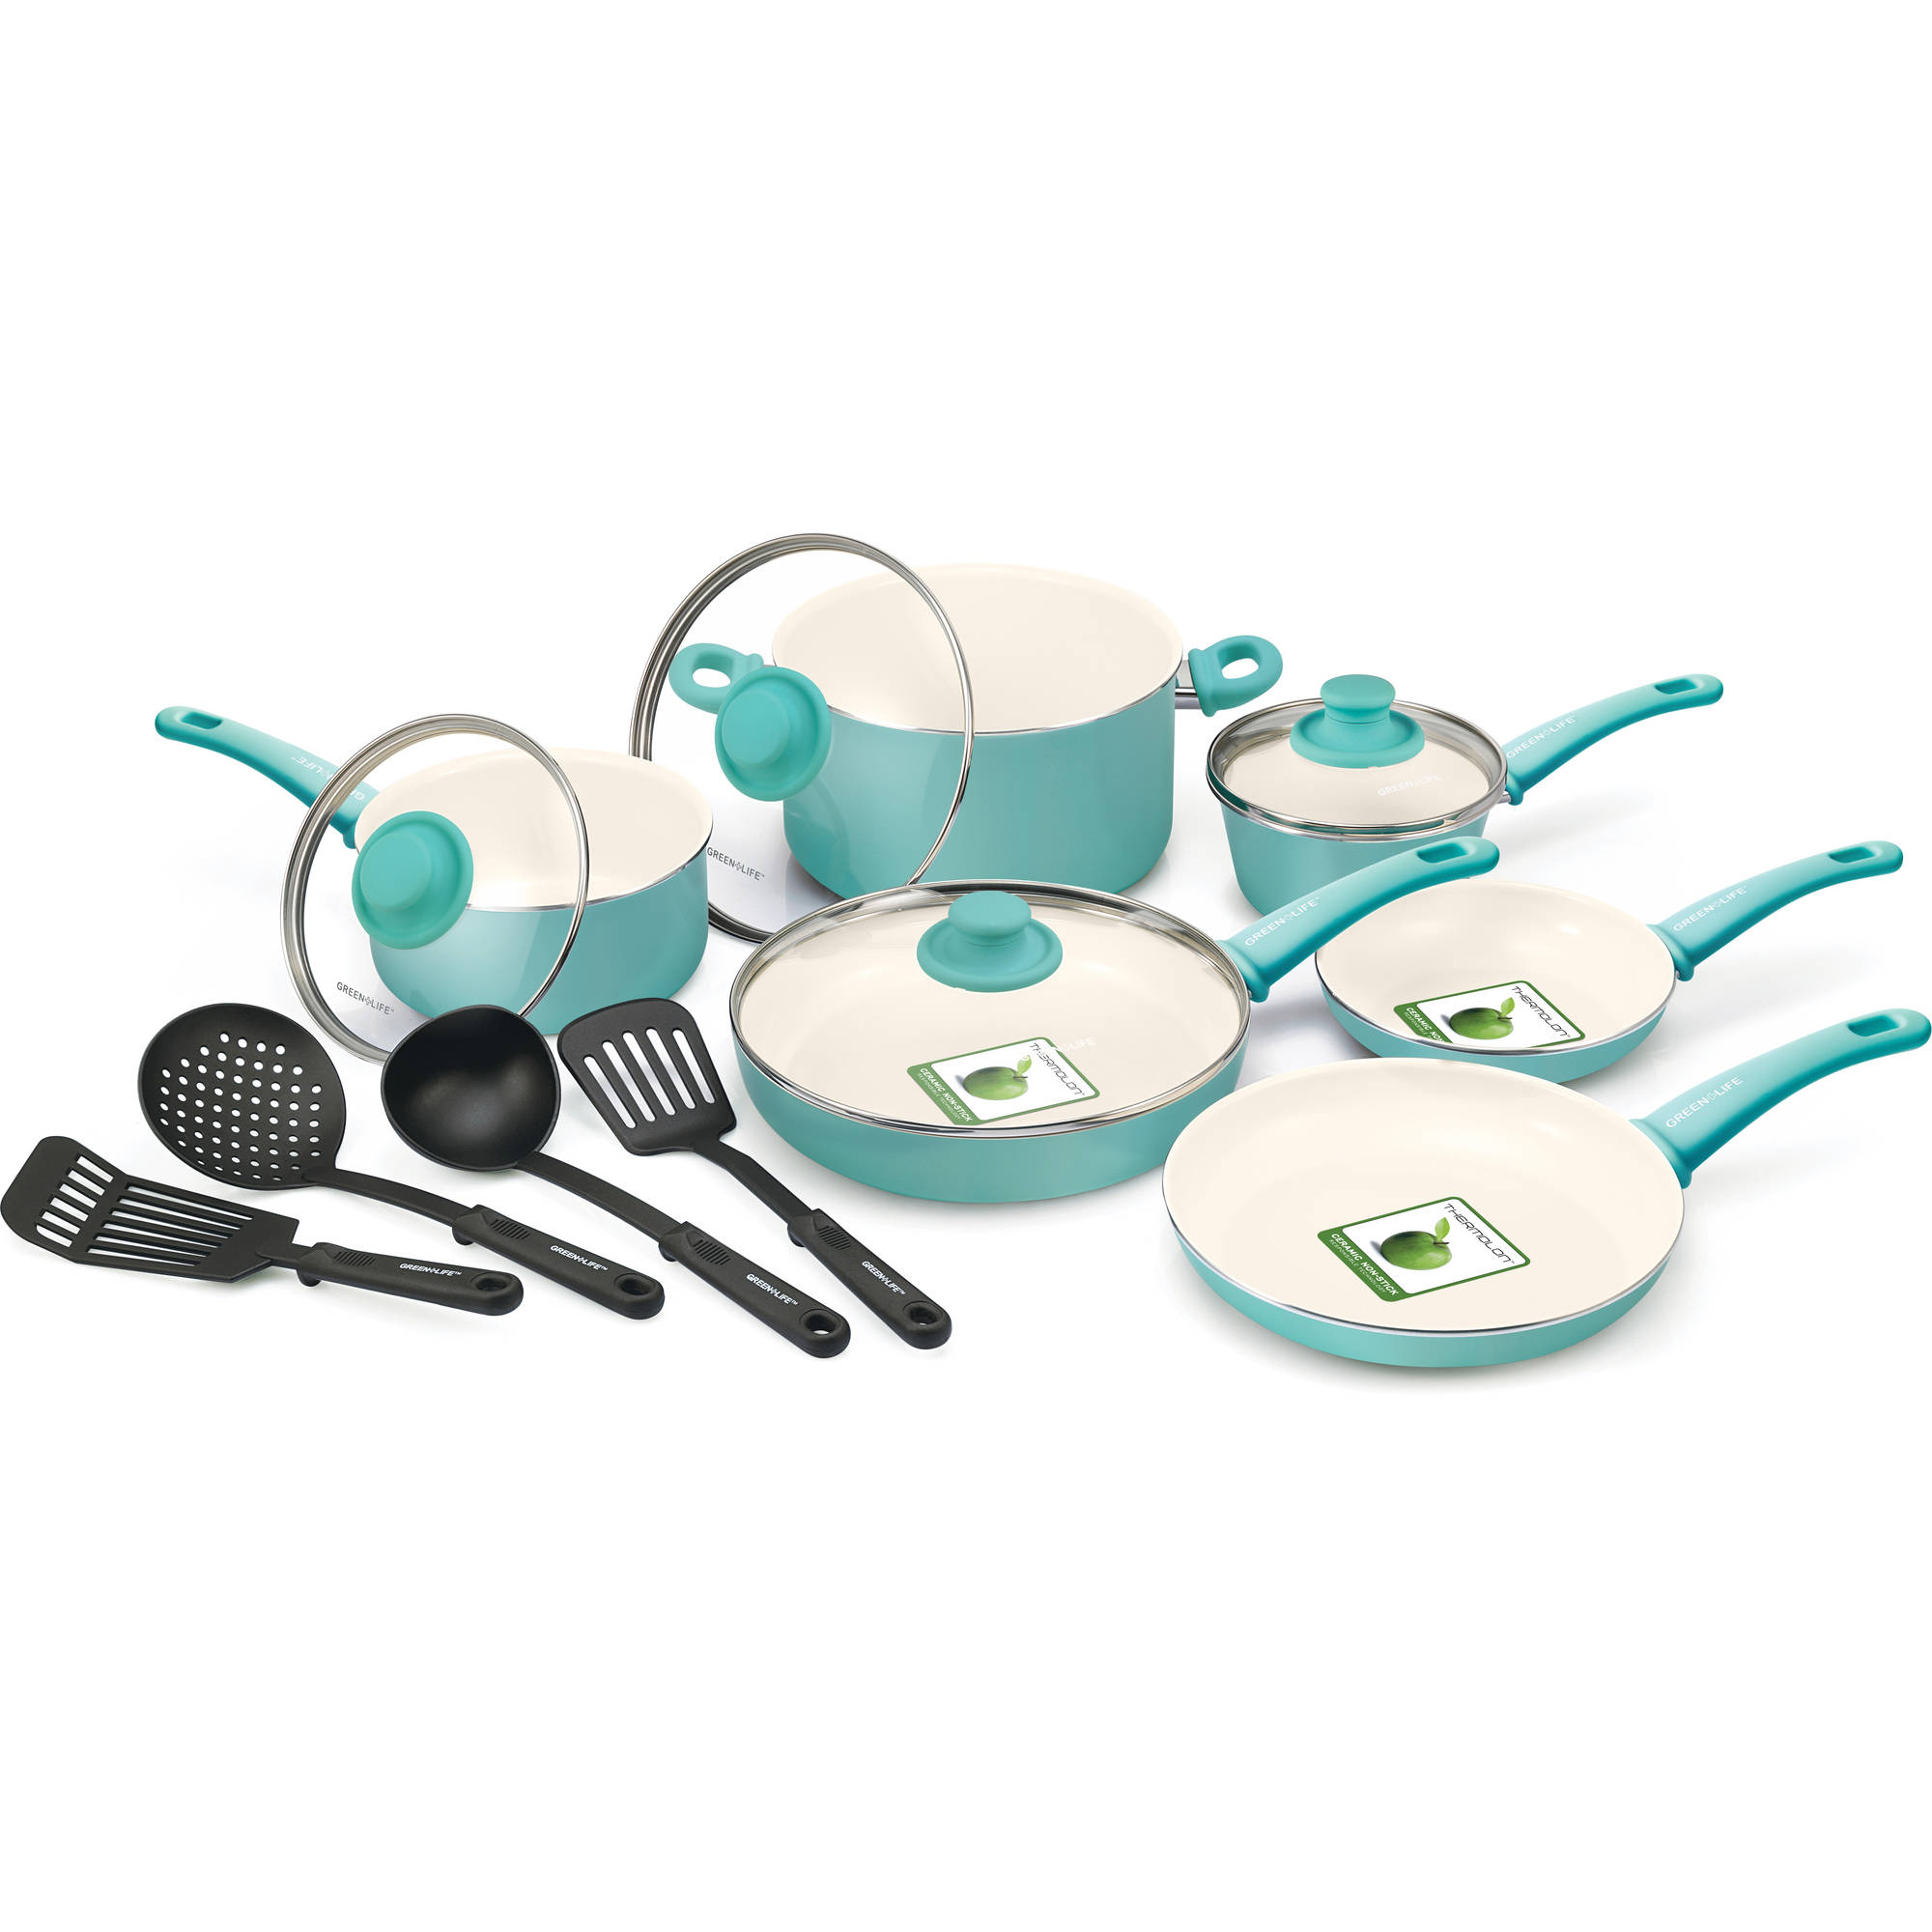 GreenLife Healthy Ceramic Non-Stick 14-Piece Soft Grip Cookware Set